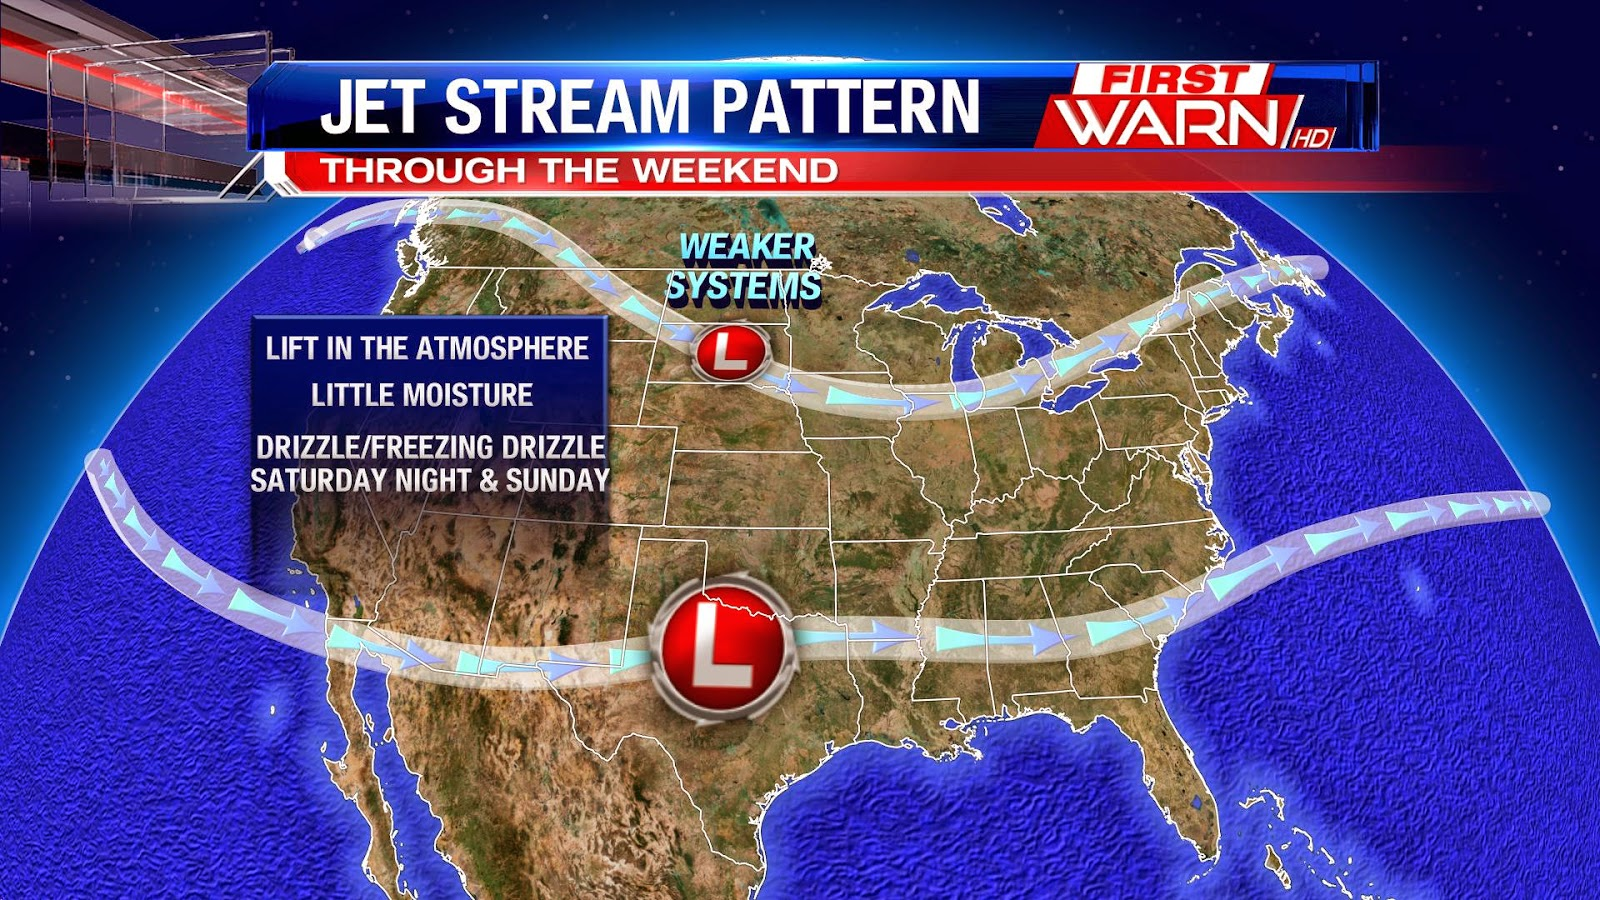 First Warn Weather Team December - Us weather map for december